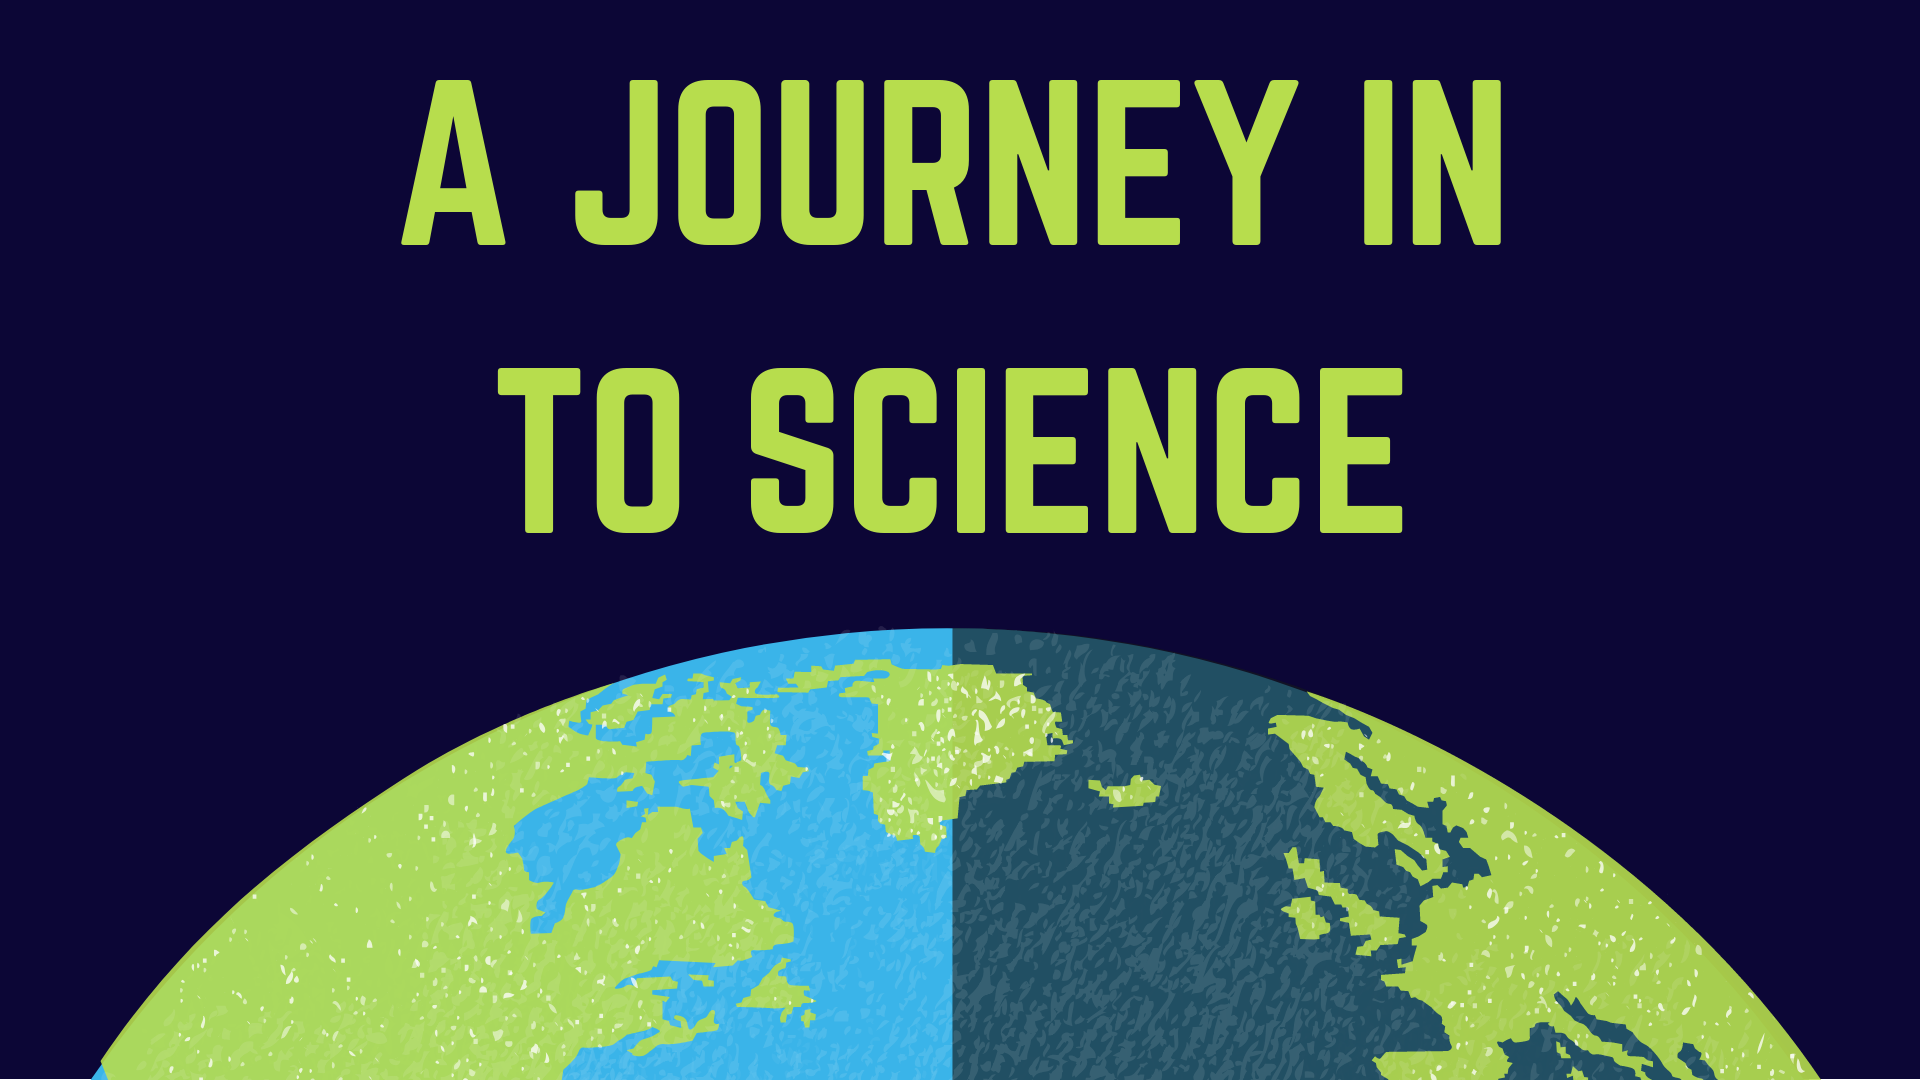 A journey to science.